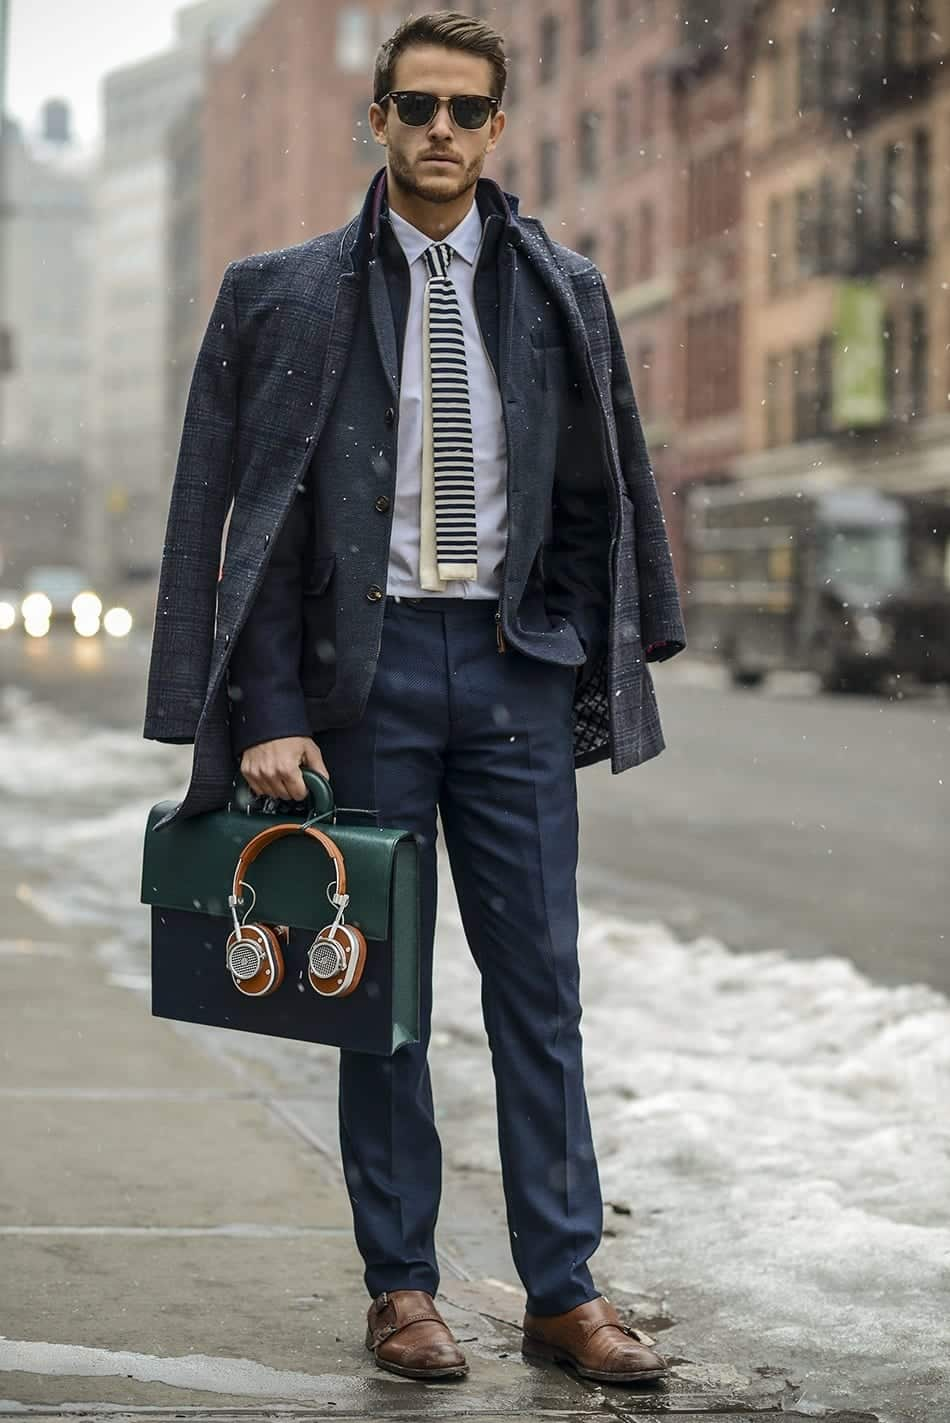 20 Most Popular Adam Gallagher Outfits Look This Season